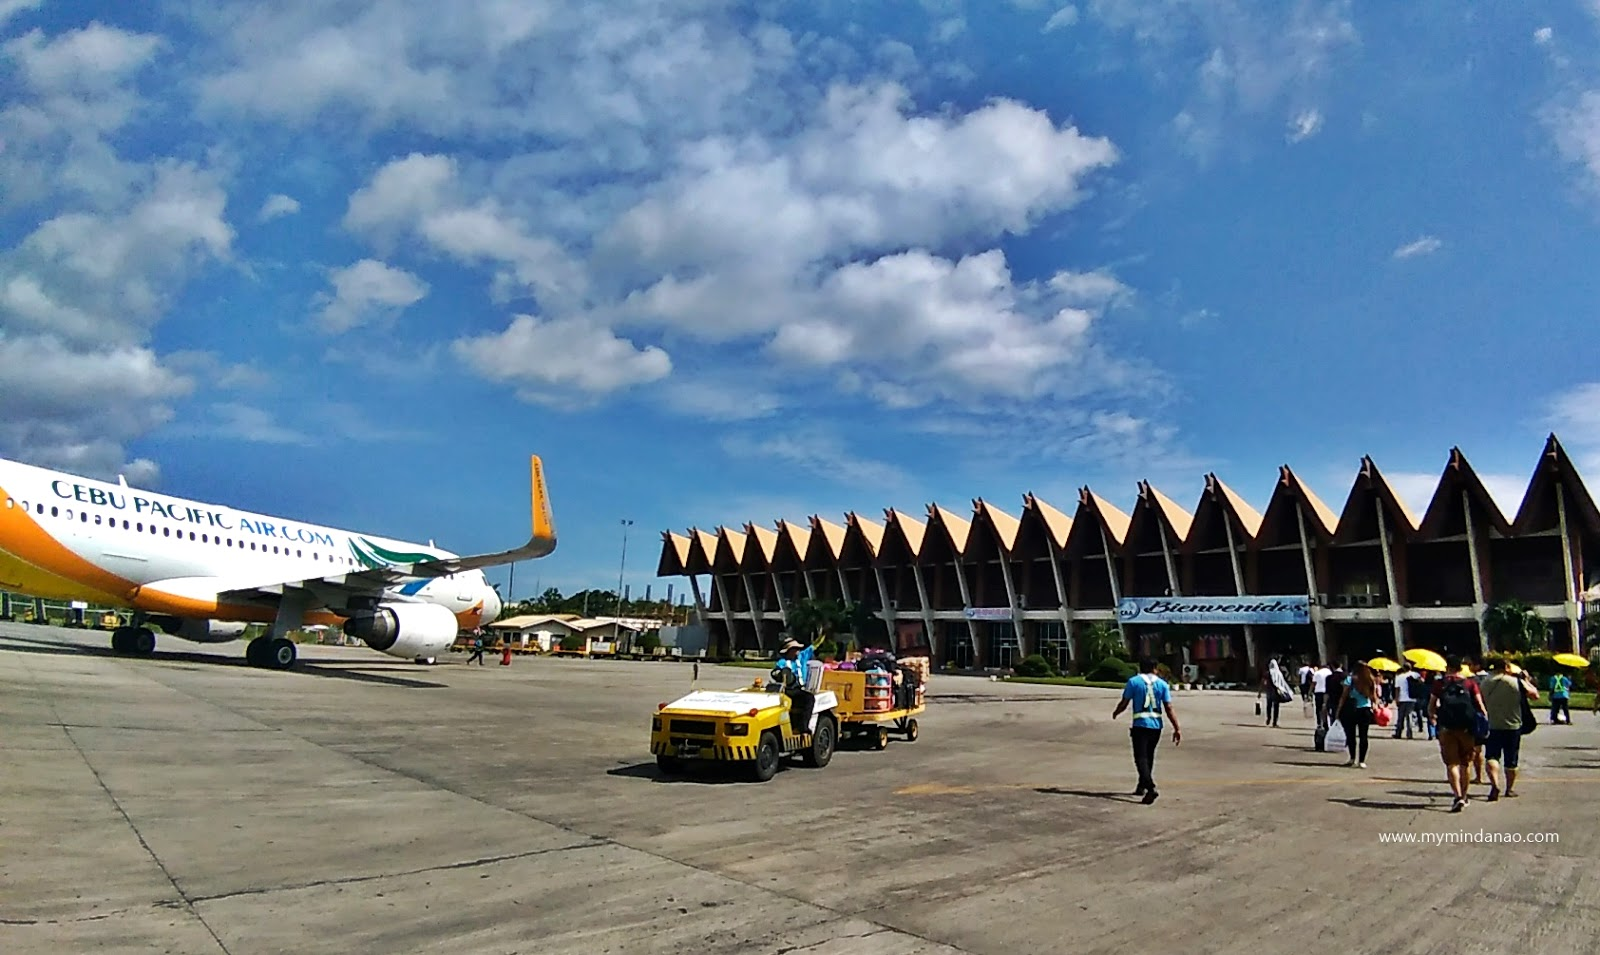 Cebu Pacific added more flights for Zamboanga - Tawi-Tawi route